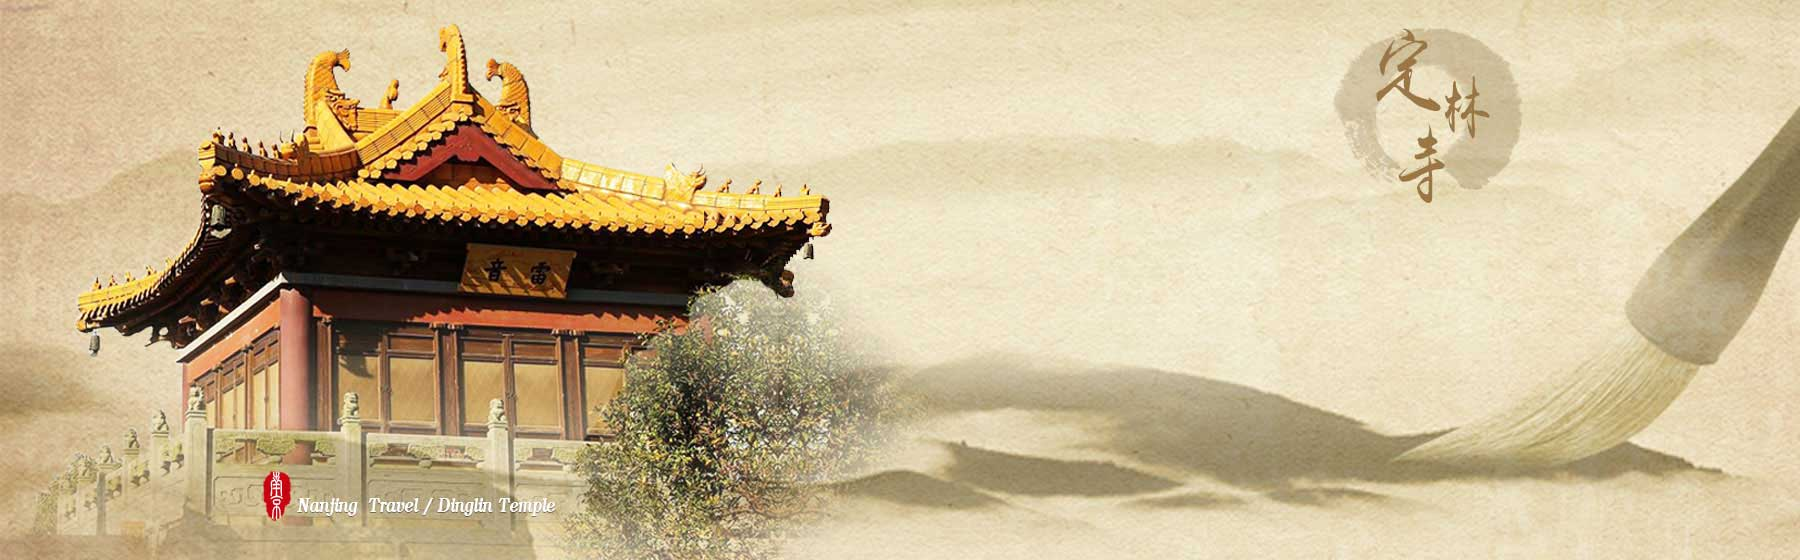 Index banner The Center of Buddhism Culture in Eastern China